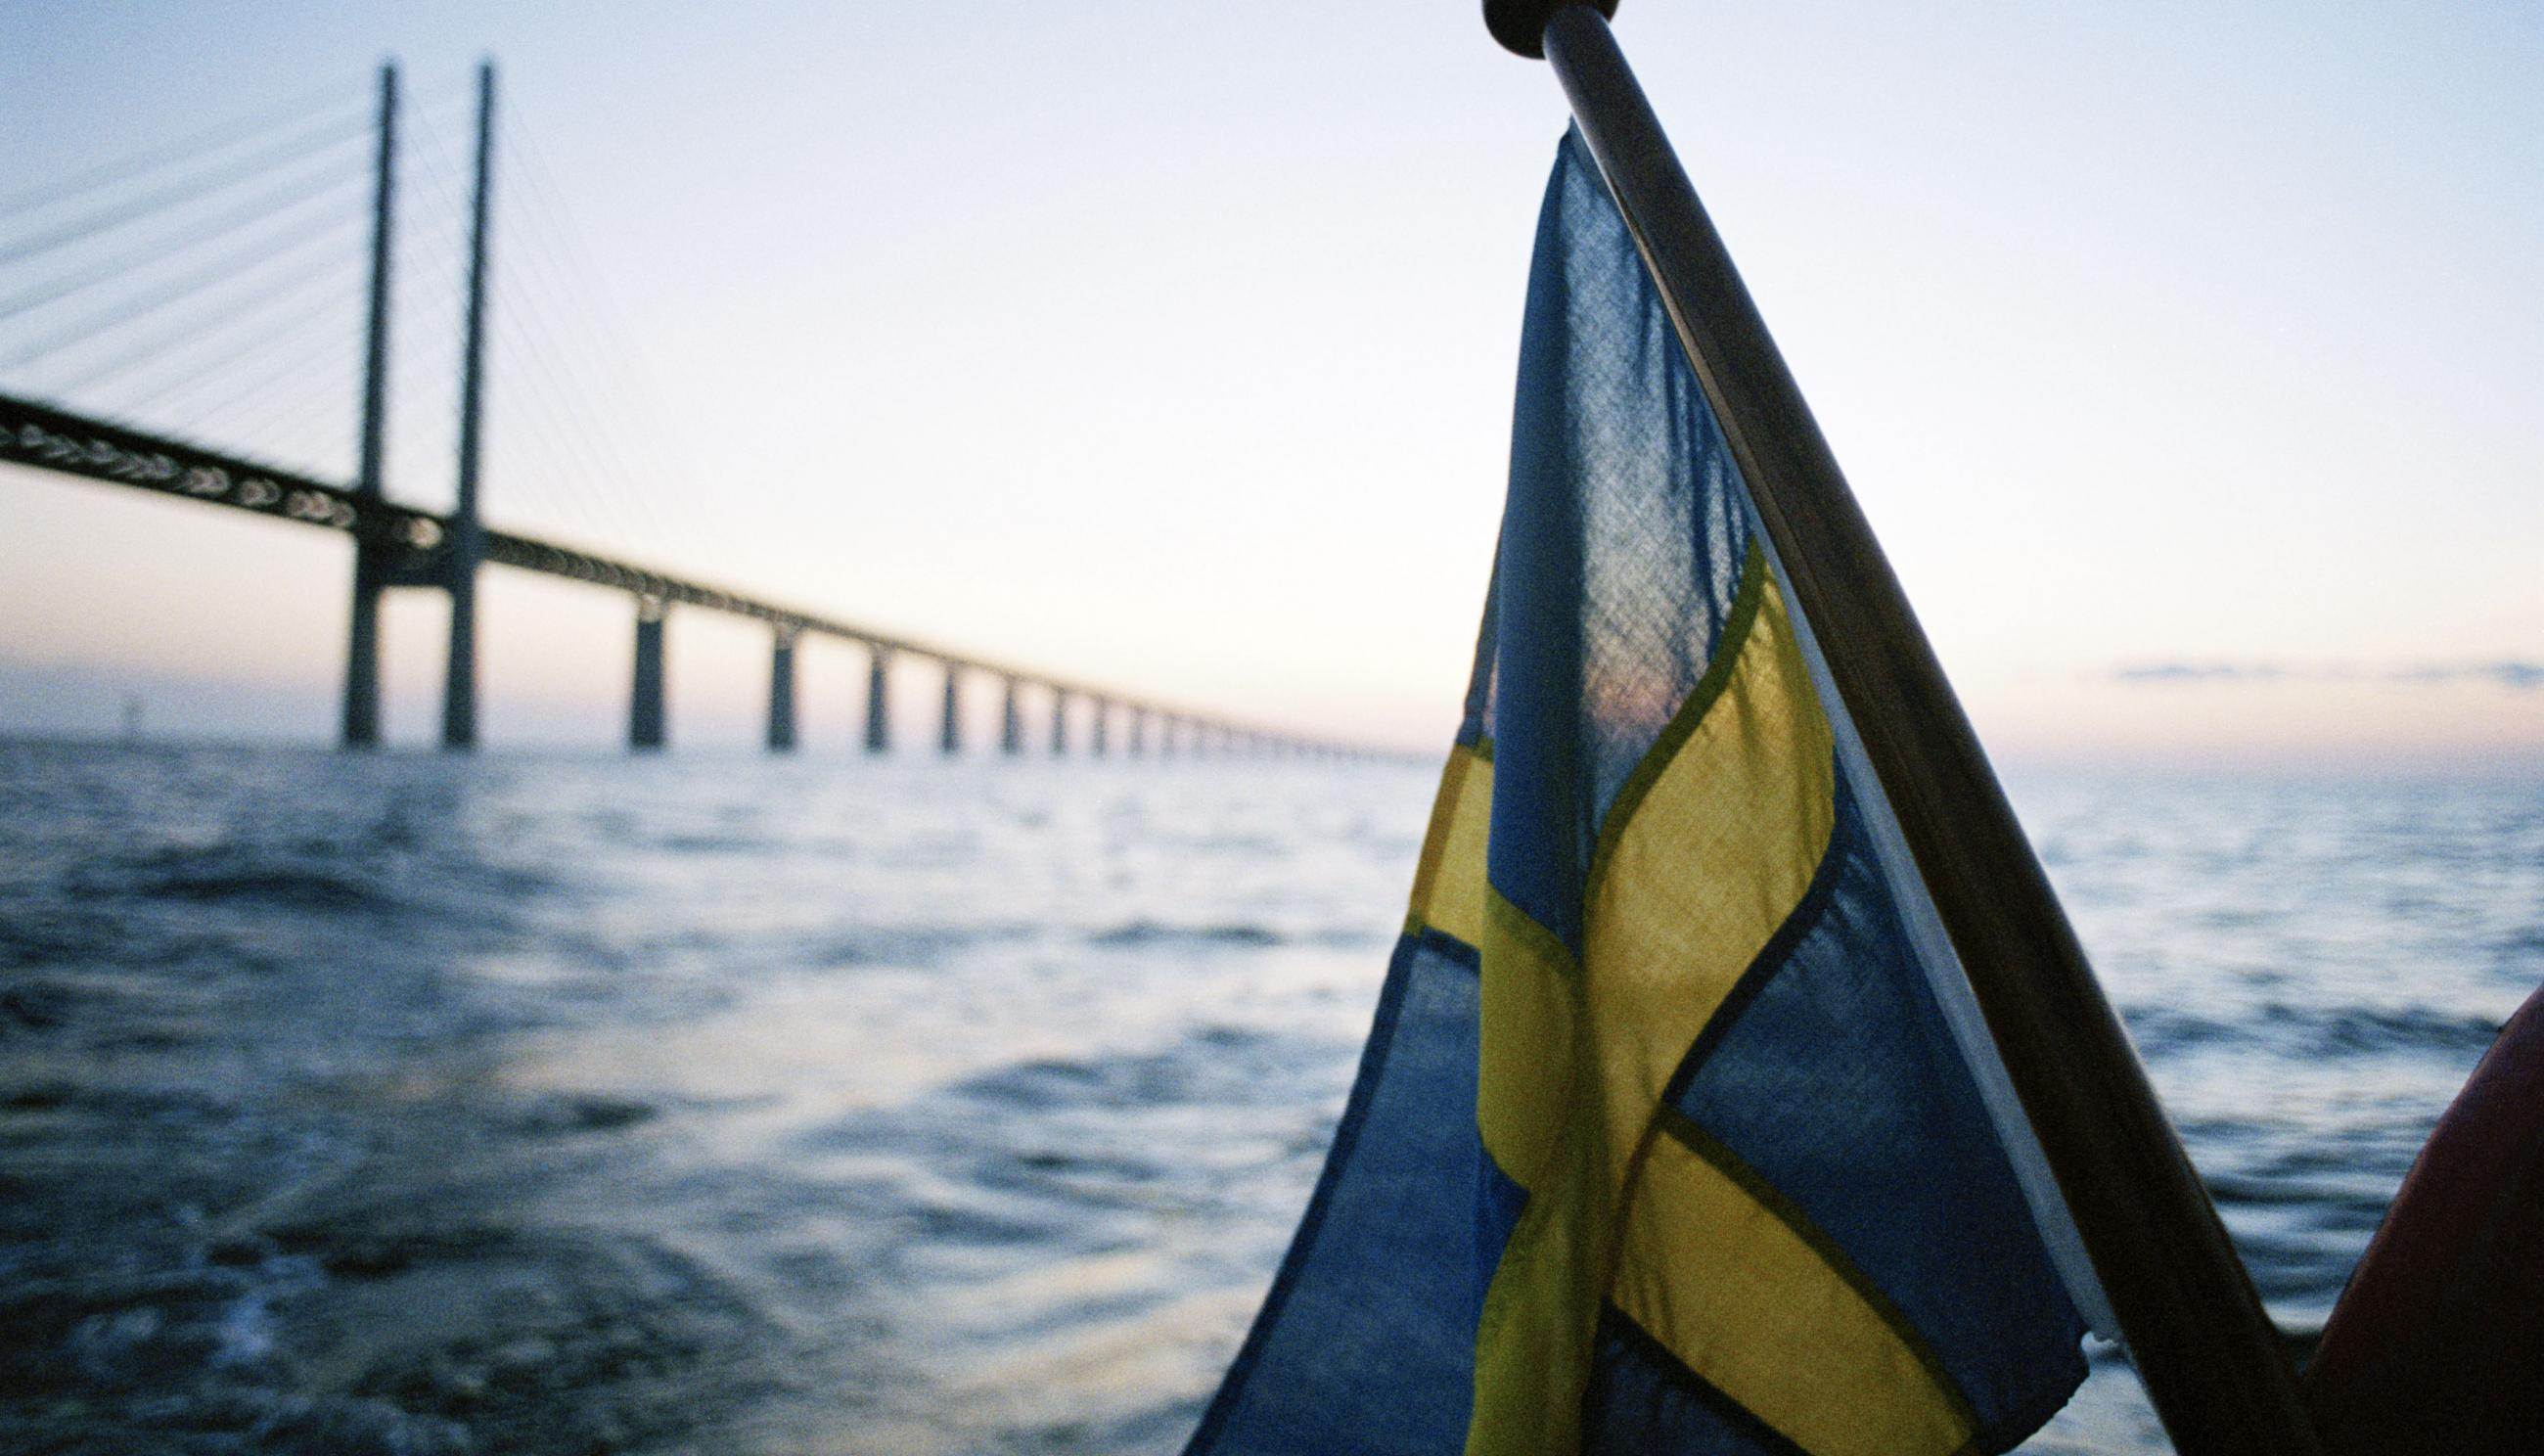 Swedish flag in front of large bridge in the sea